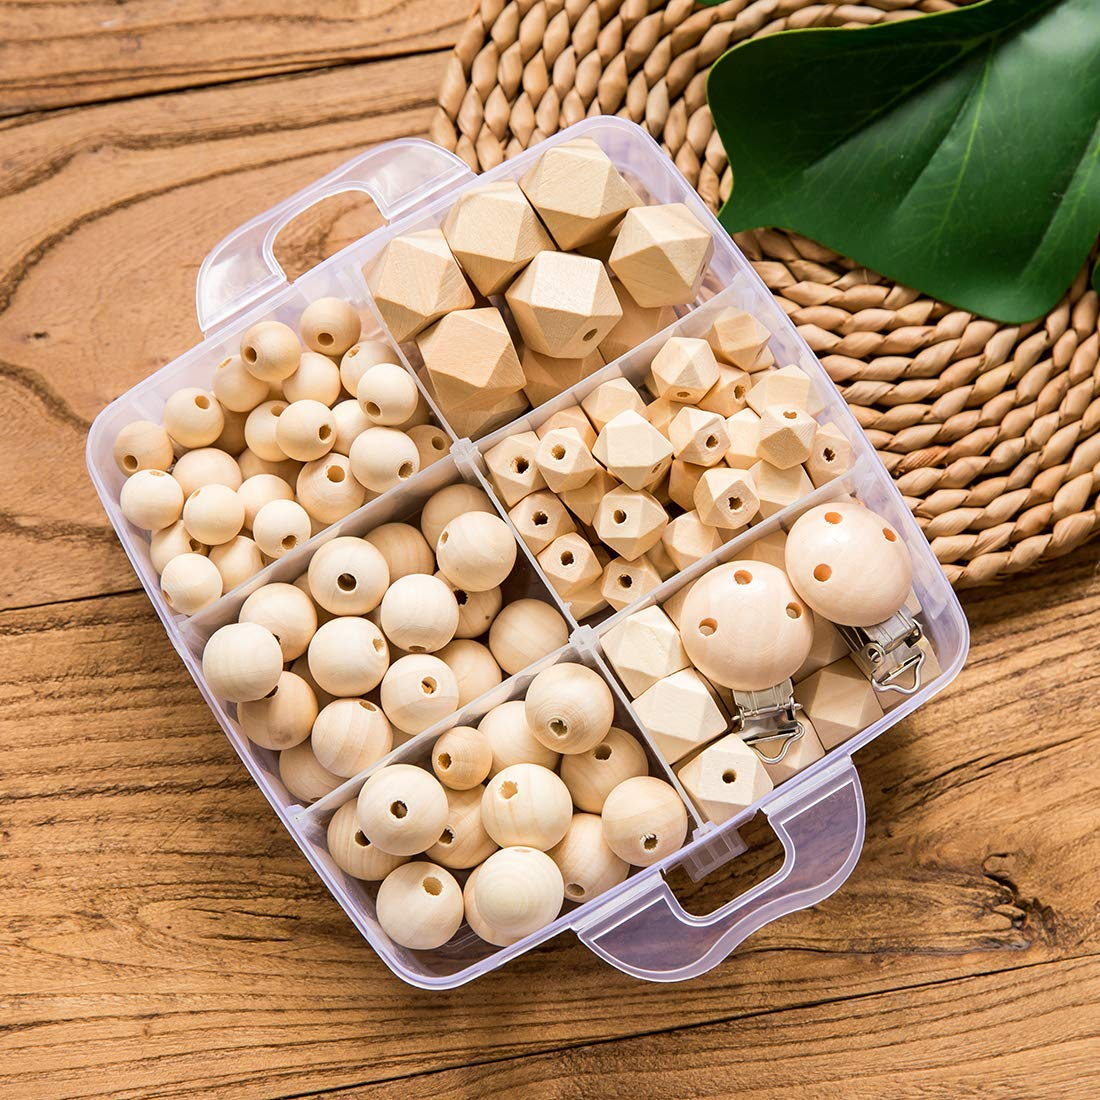 Baby Wooden Teething Safe Maple Mixed Geometric Hexagon Round Beads for Nursing Jewelry DIY Teether Toys Accessories Kit